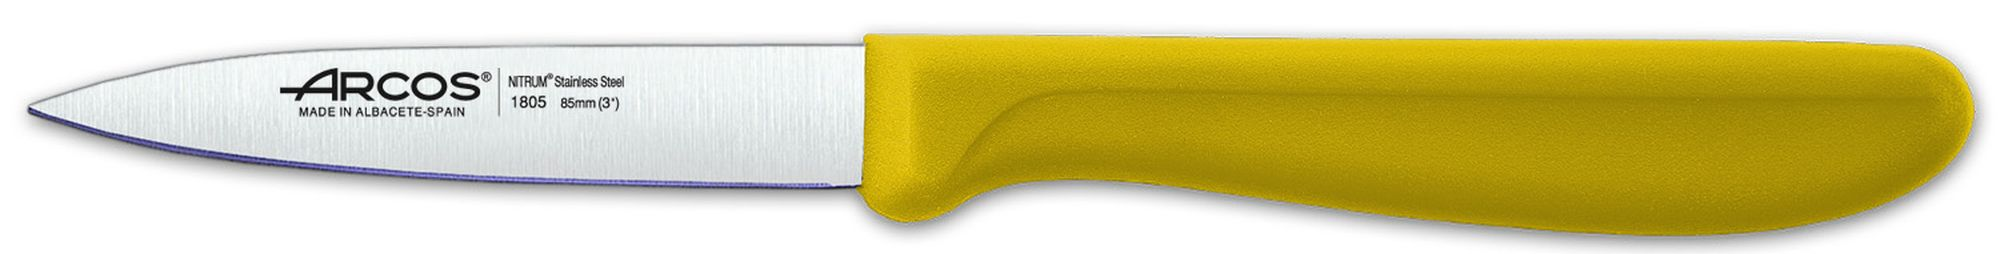 Paring Knife Yellow Arcos ref.: 180525